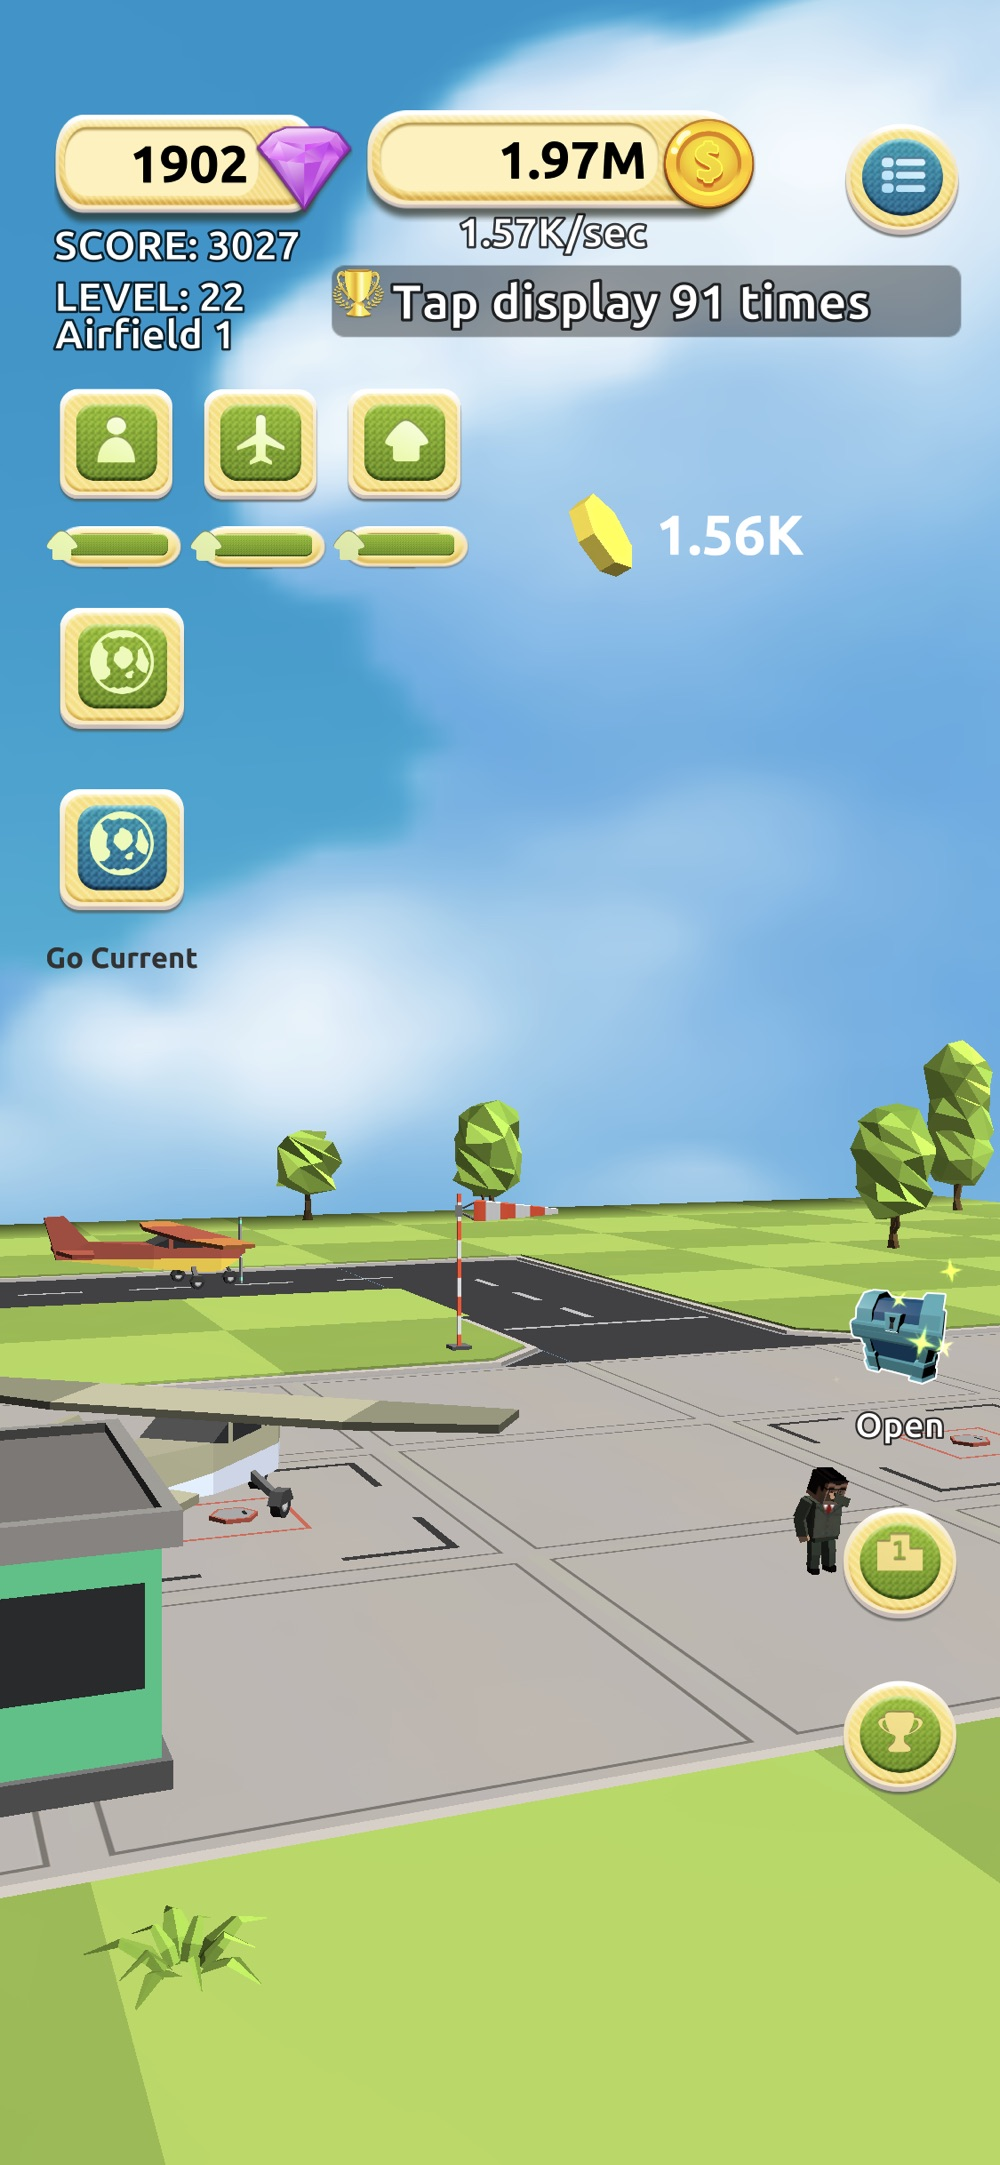 Hack tool for Airfield Tycoon Clicker